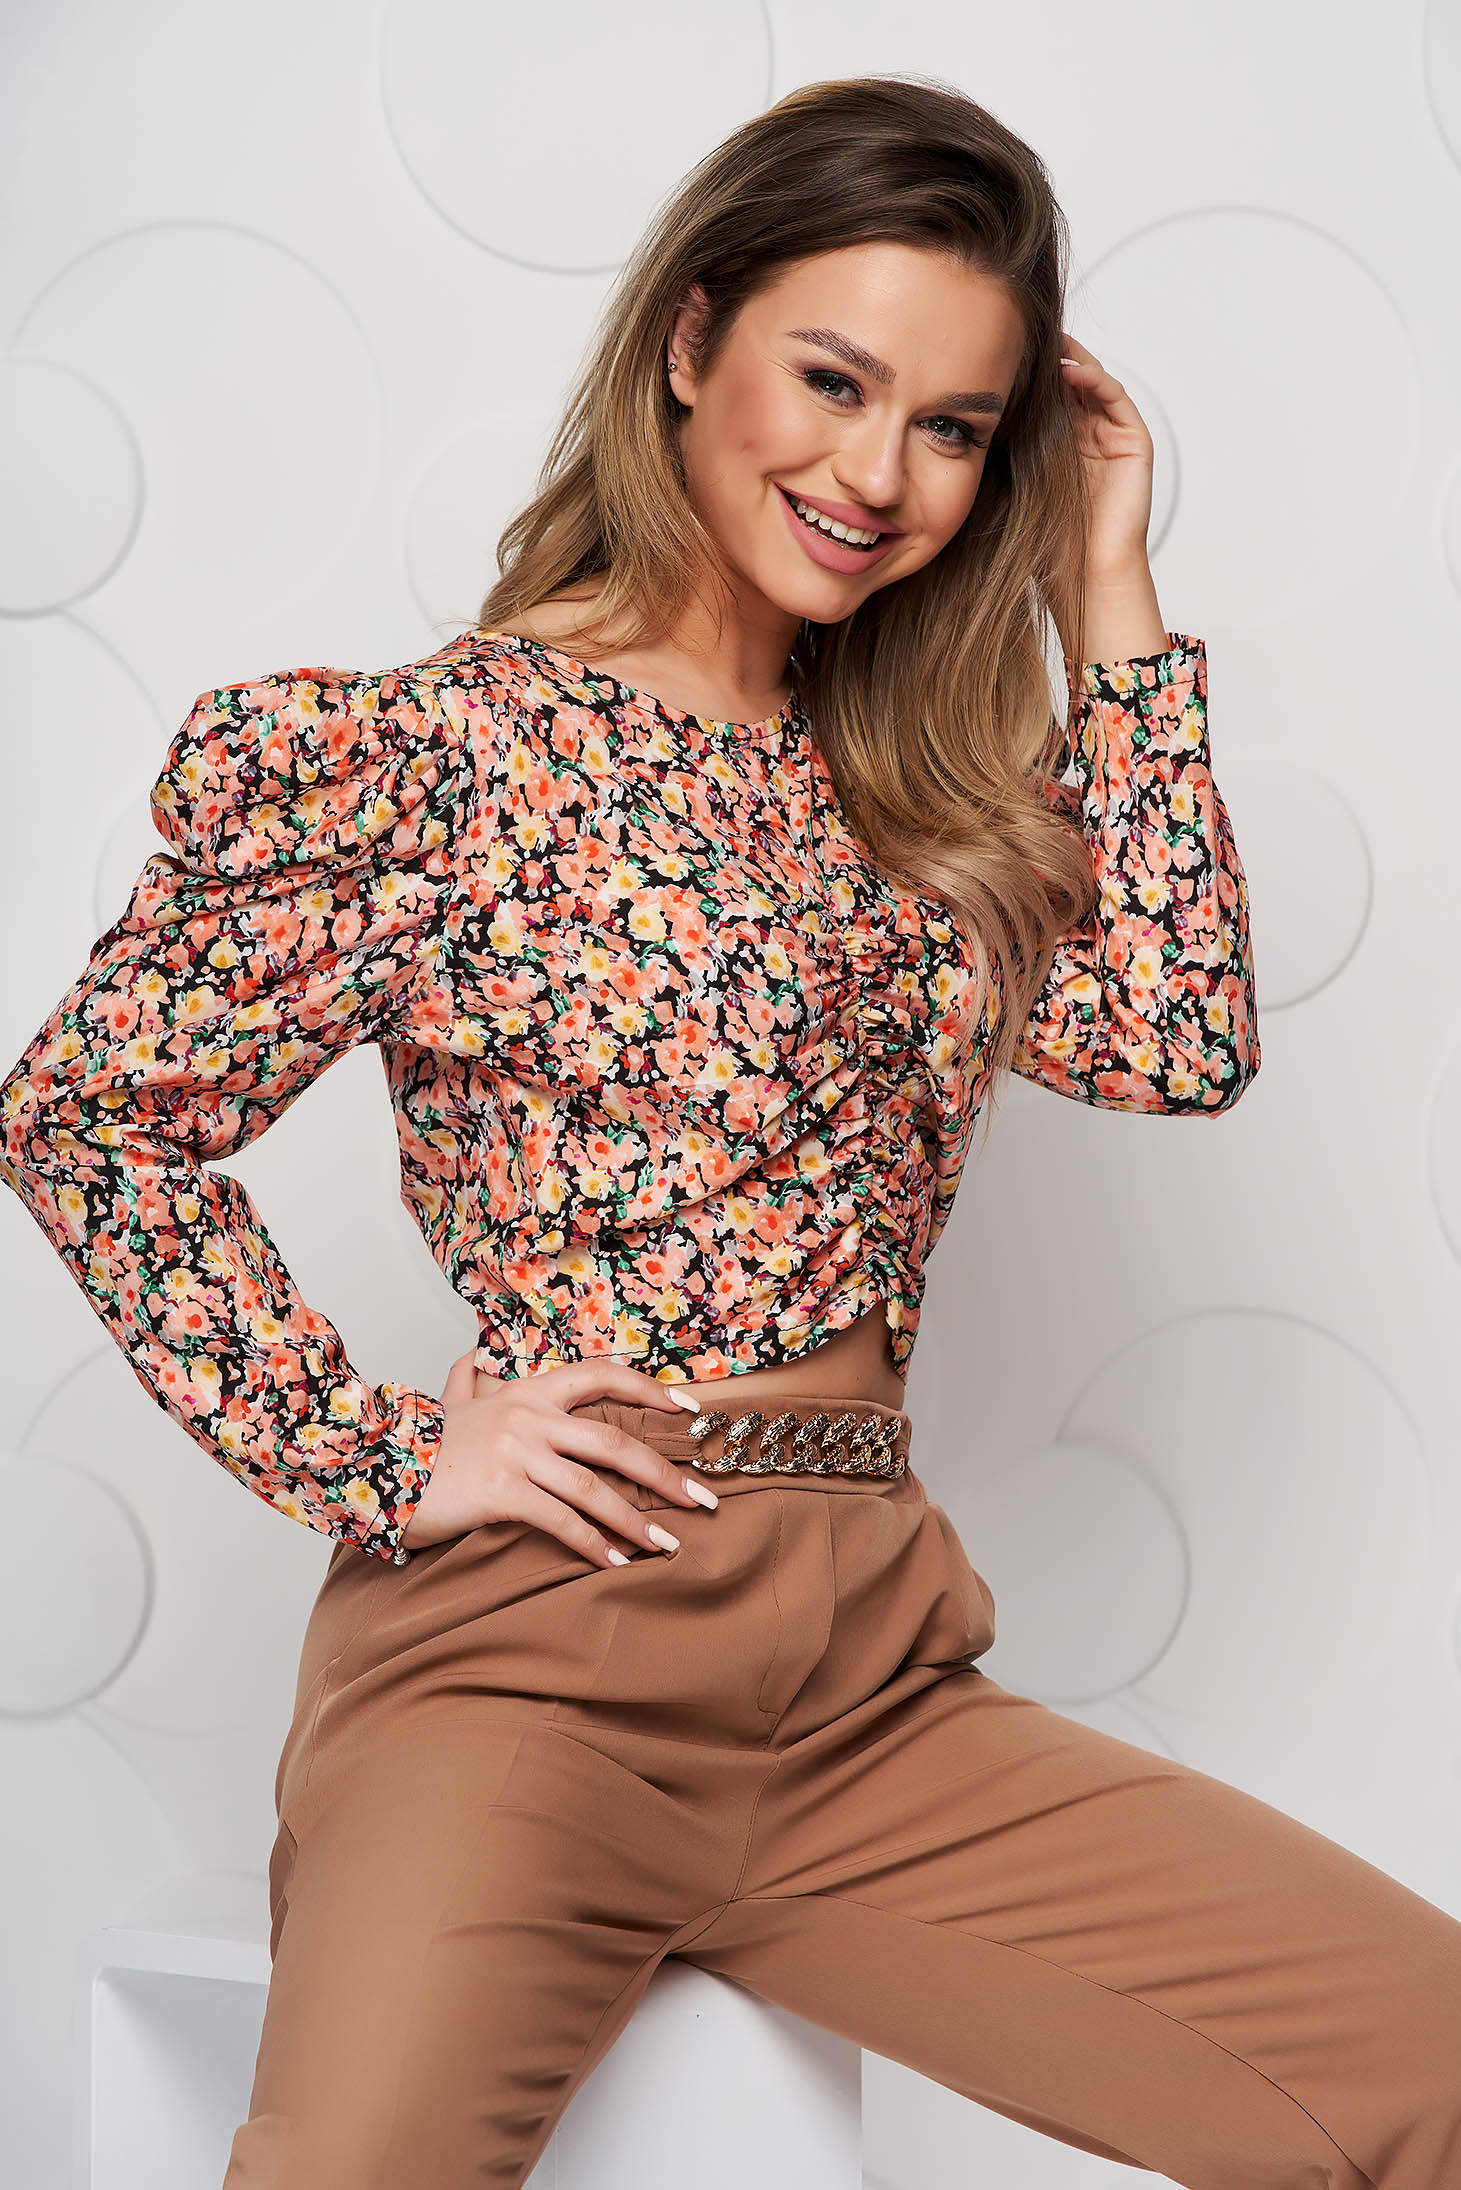 Orange women`s blouse with floral print tented from wrinkled fabric high shoulders